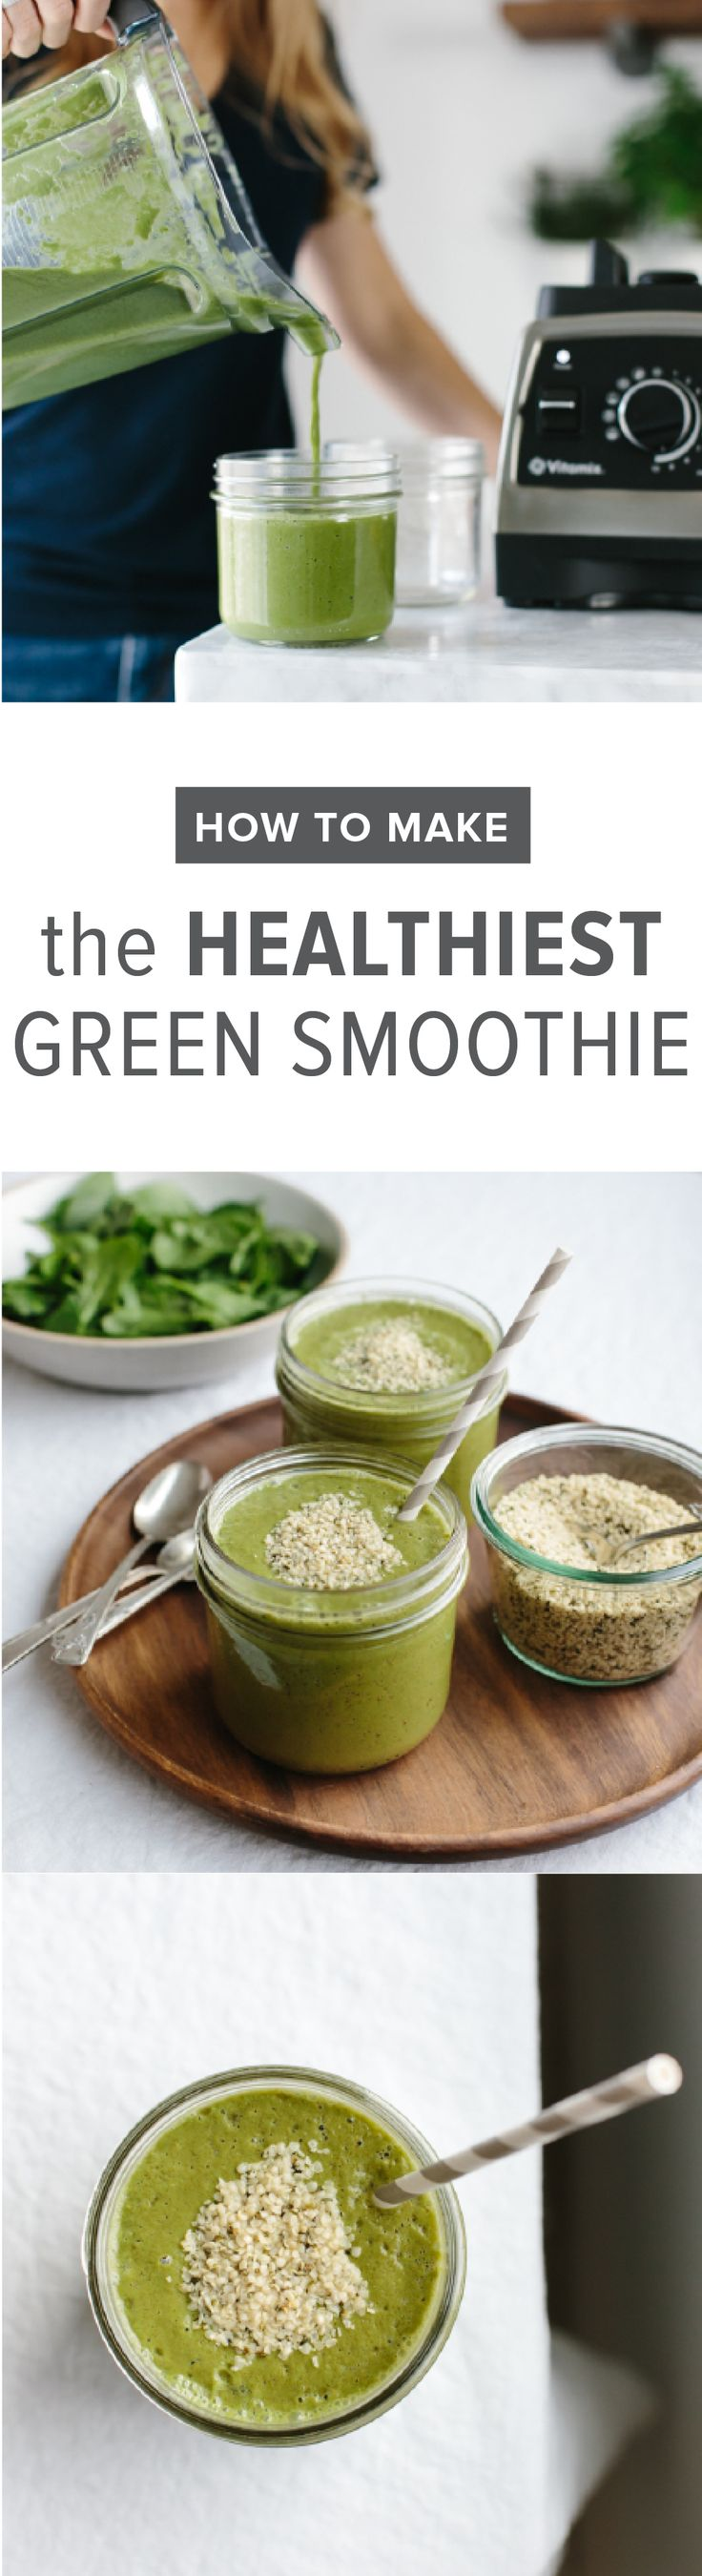 How to make the healthiest green smoothie (recipes + tips). Downshiftology.com